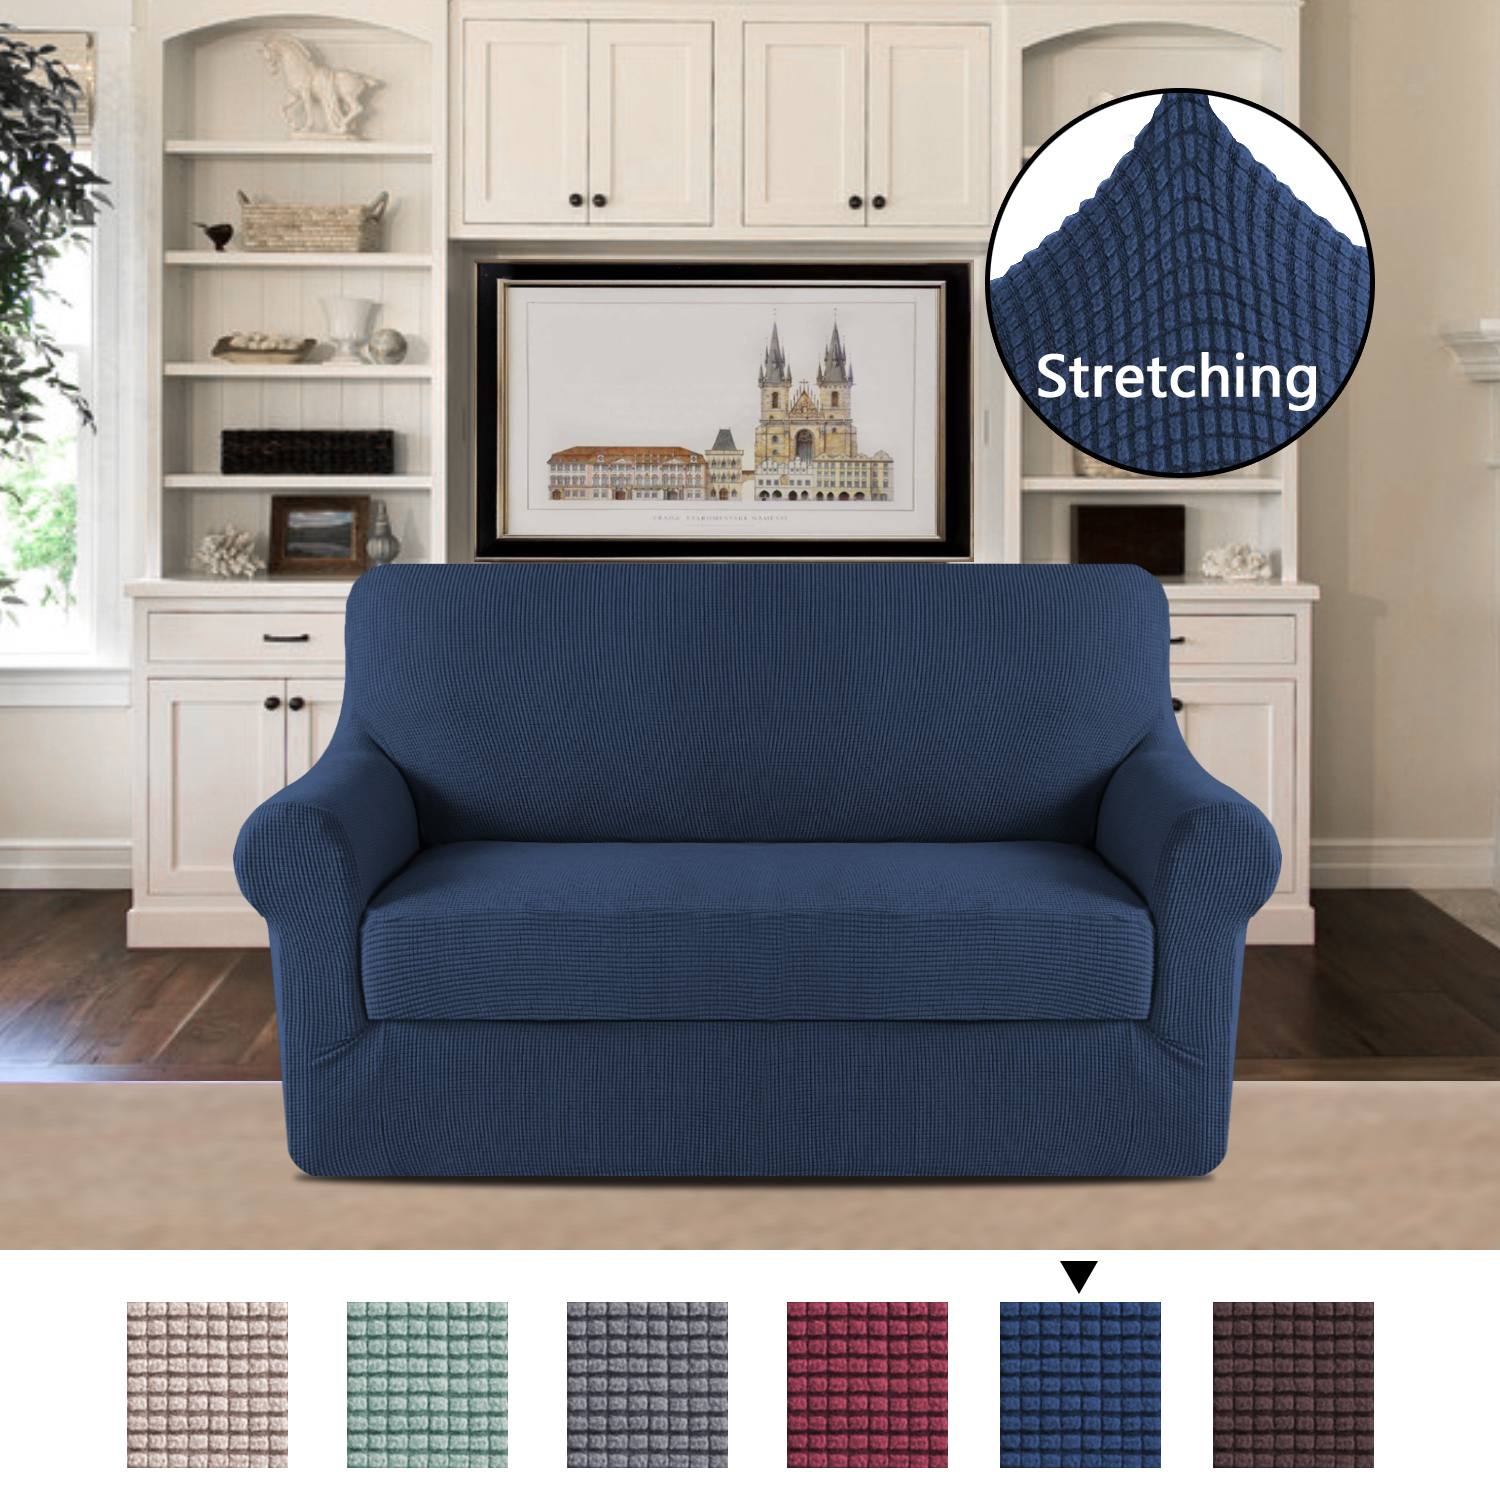 Polyester Elastic Sofa Slipcovers for Living Room Spandex Stretch Fabric Super Soft 2 Pieces, Stretching Skid Resistance Furniture Protector-Loveseat-Navy